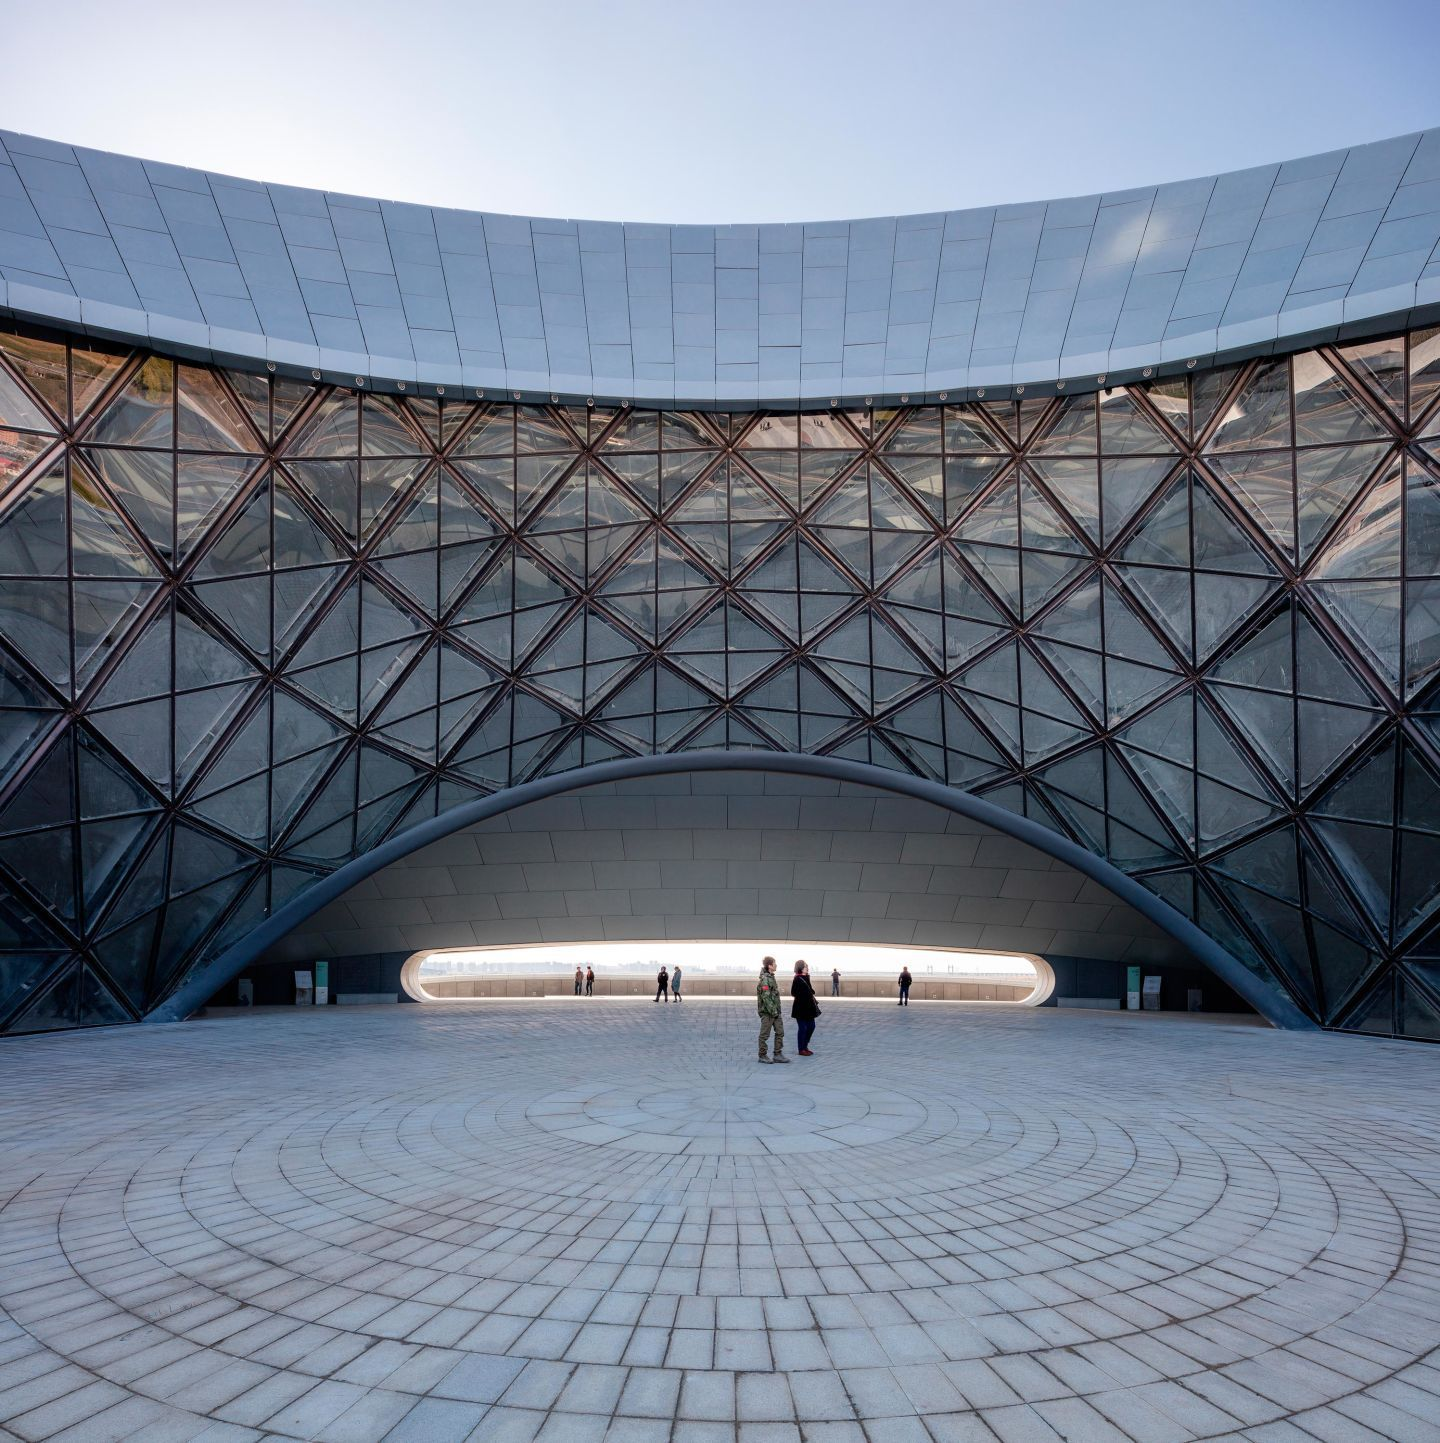 MAD Architects unveils the completed Harbin Opera House, located in the Northern Chinese city of Harbin. In 2010, MAD won the international open competition for Harbin Cultural Island, a master pla…